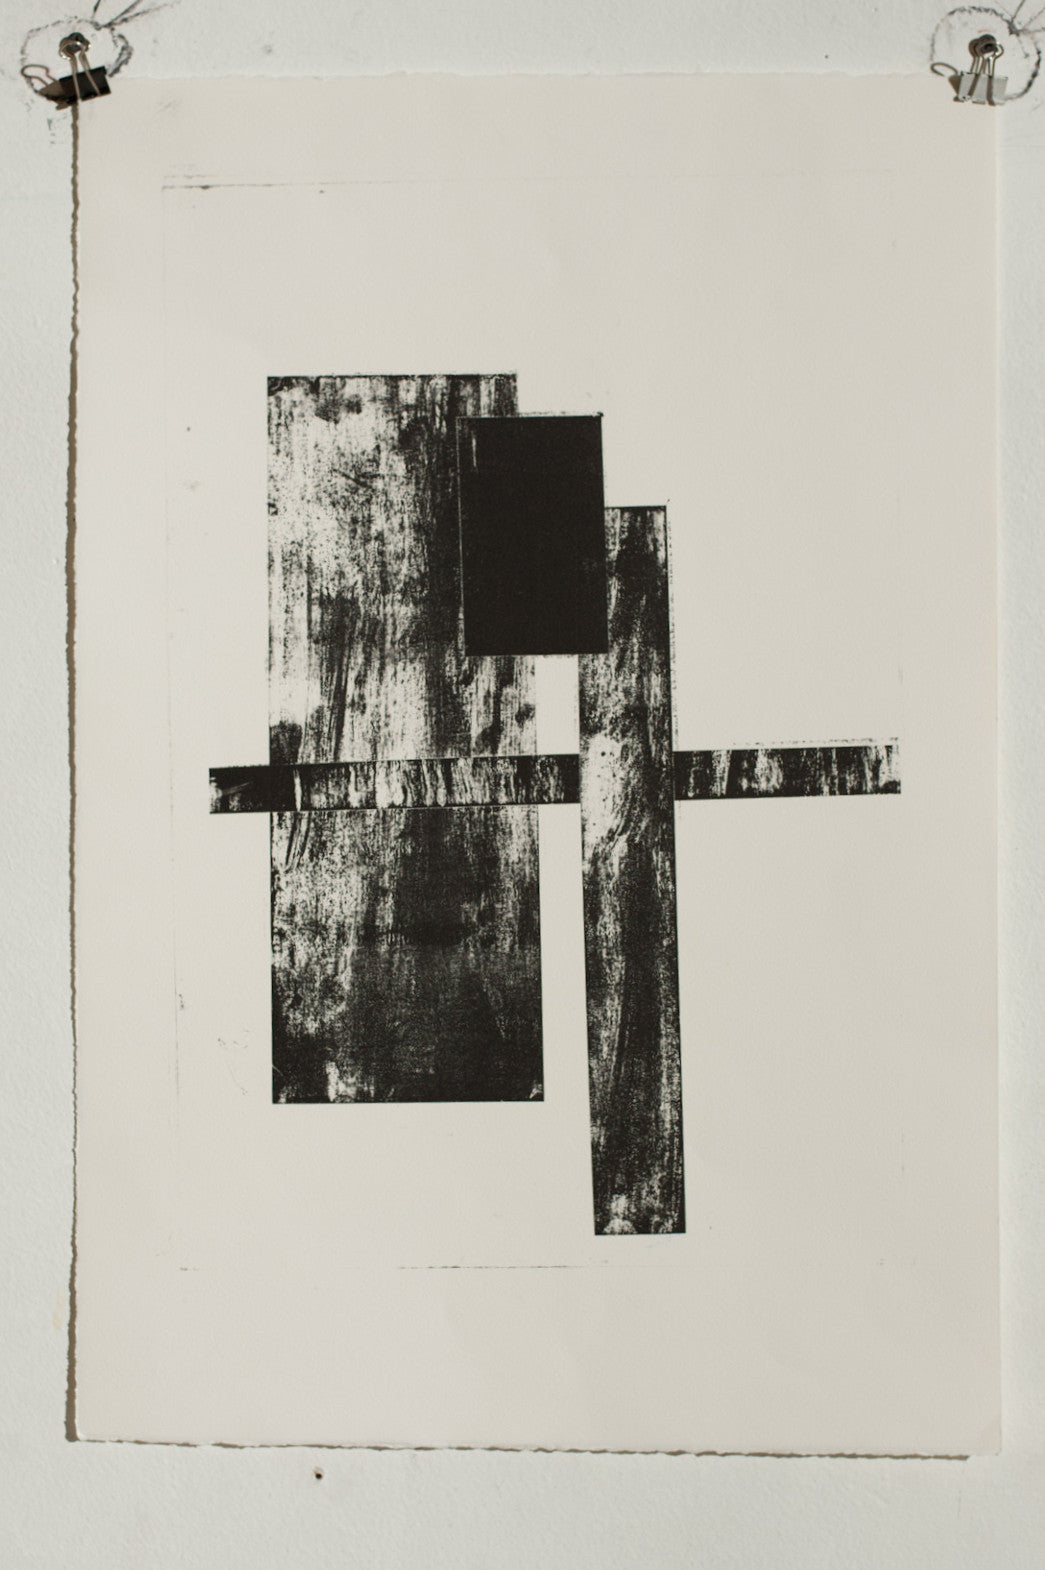 Manuel Zeitlen - Untitled 7 - Lithograph Print on Archival Paper